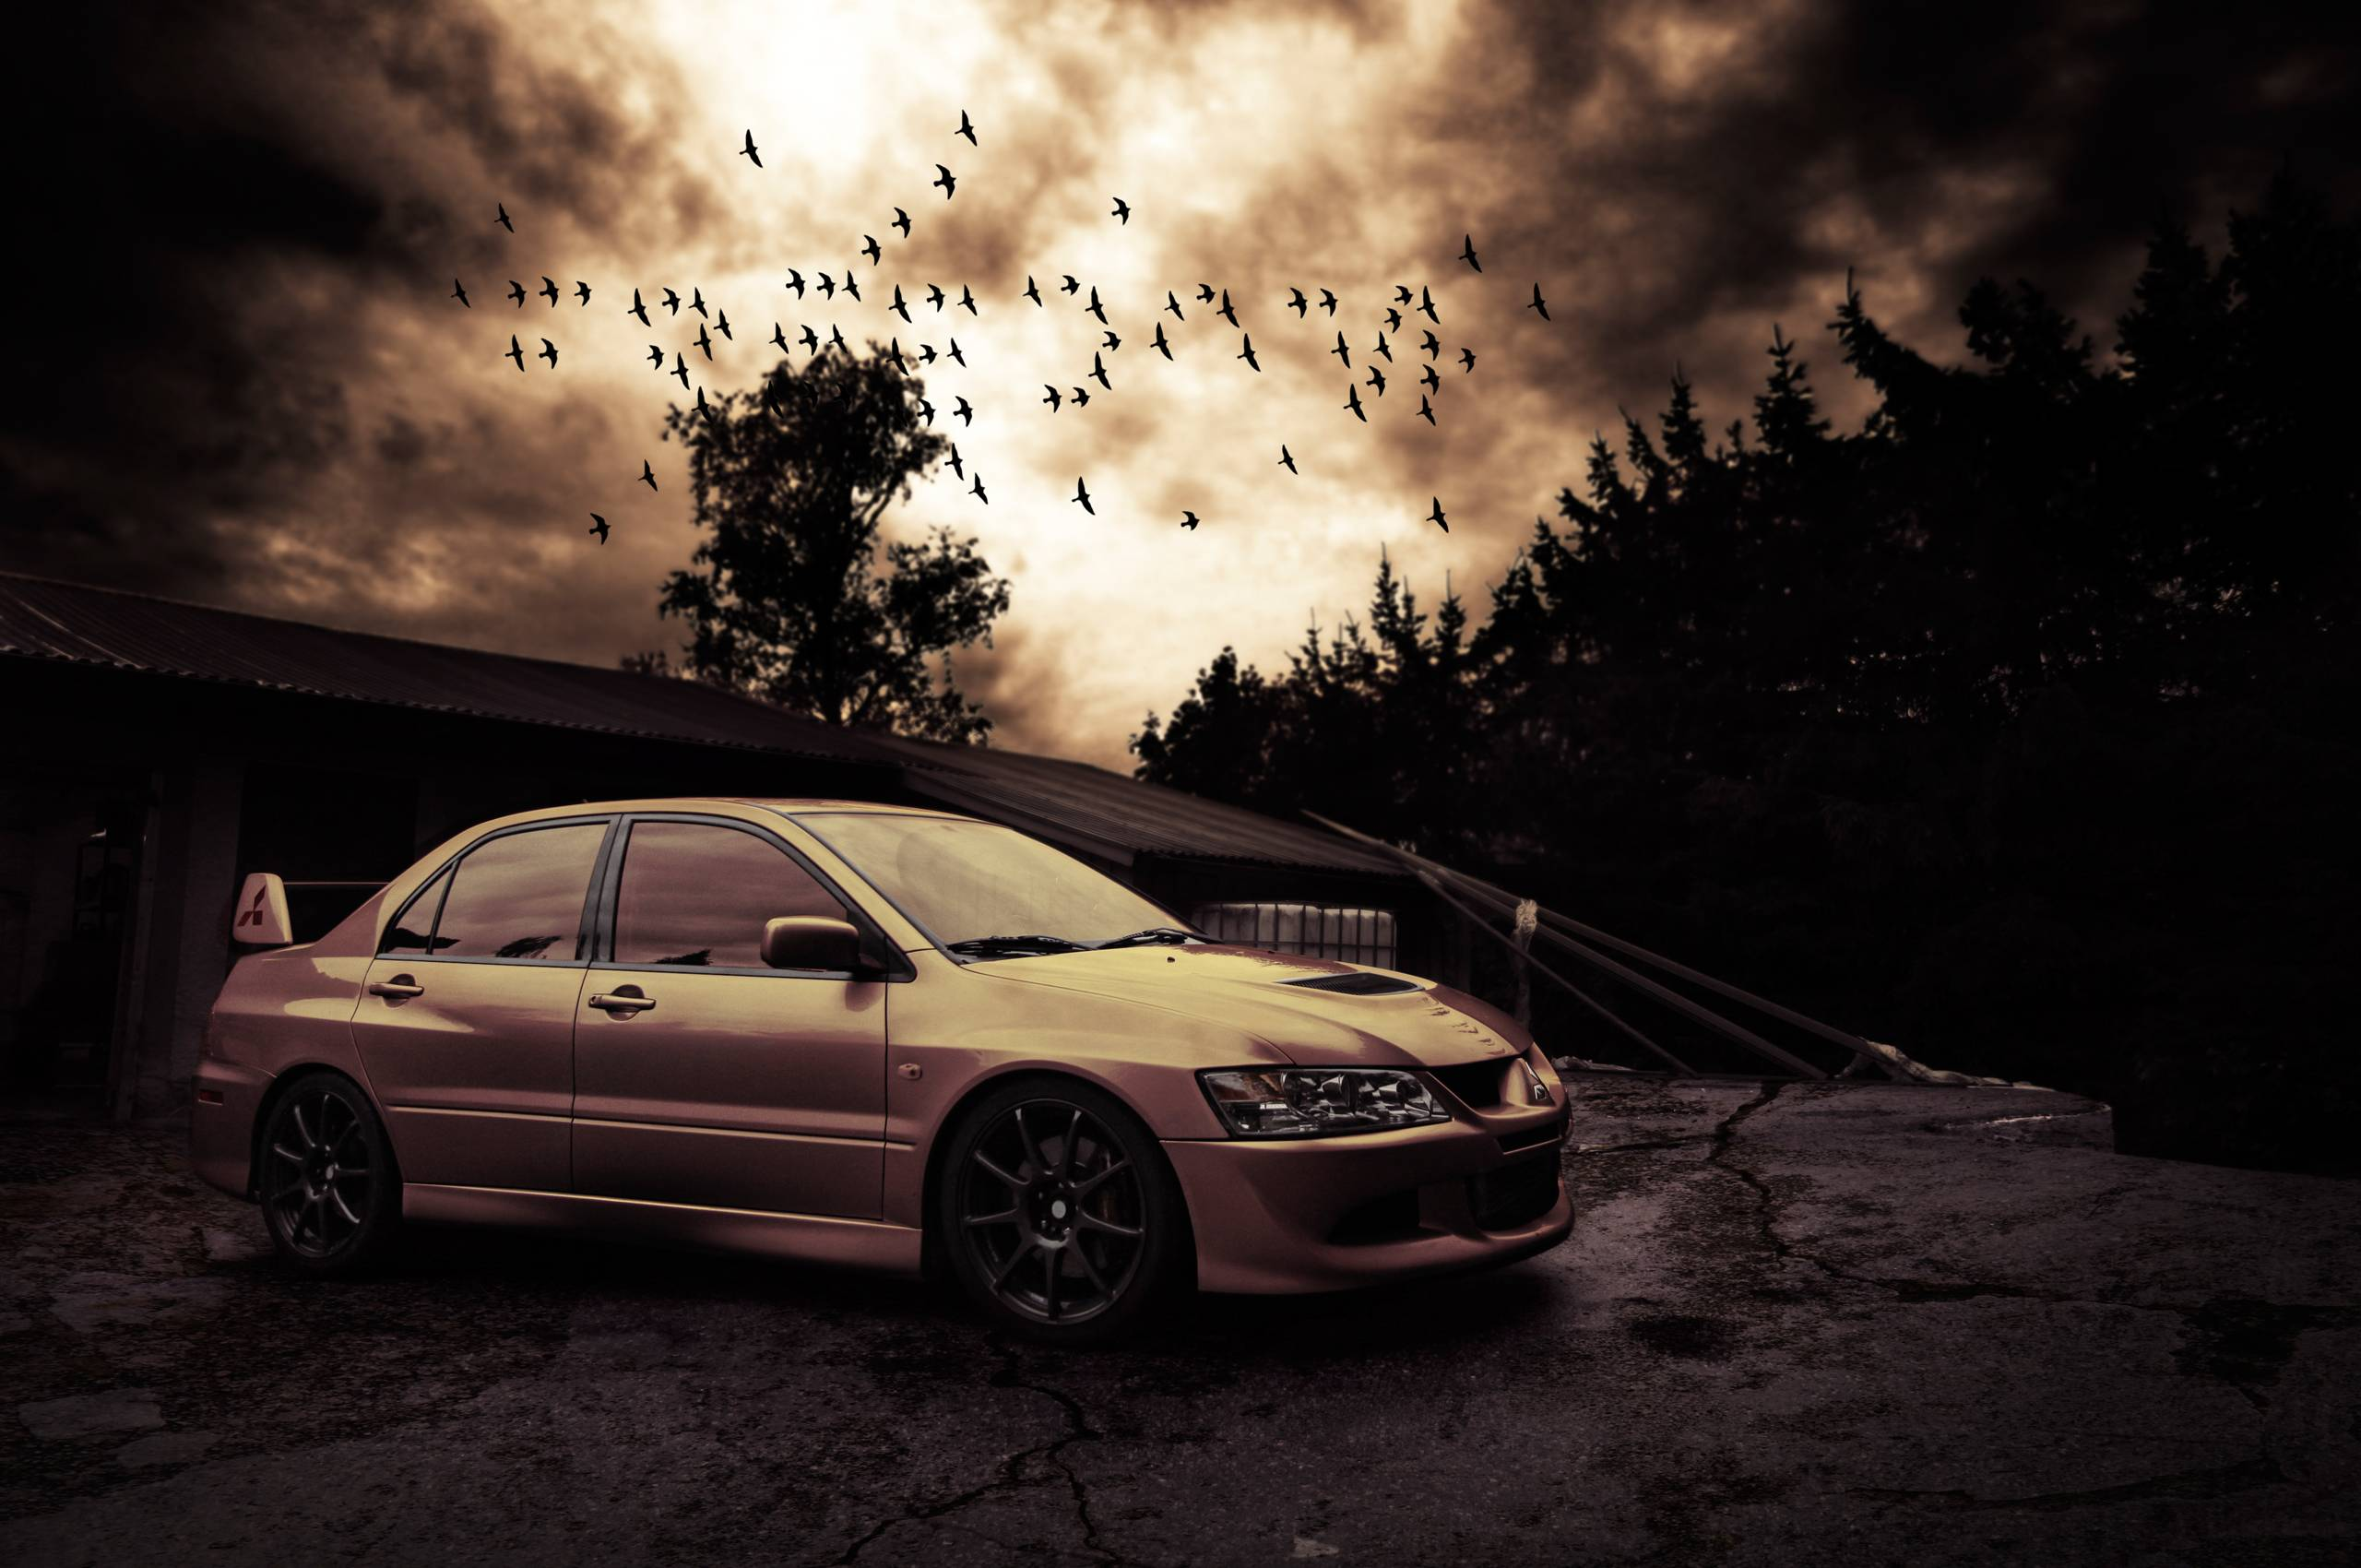 Mitsubishi Lancer Evolution X Wallpapers Wallpaper Cave - Tech info